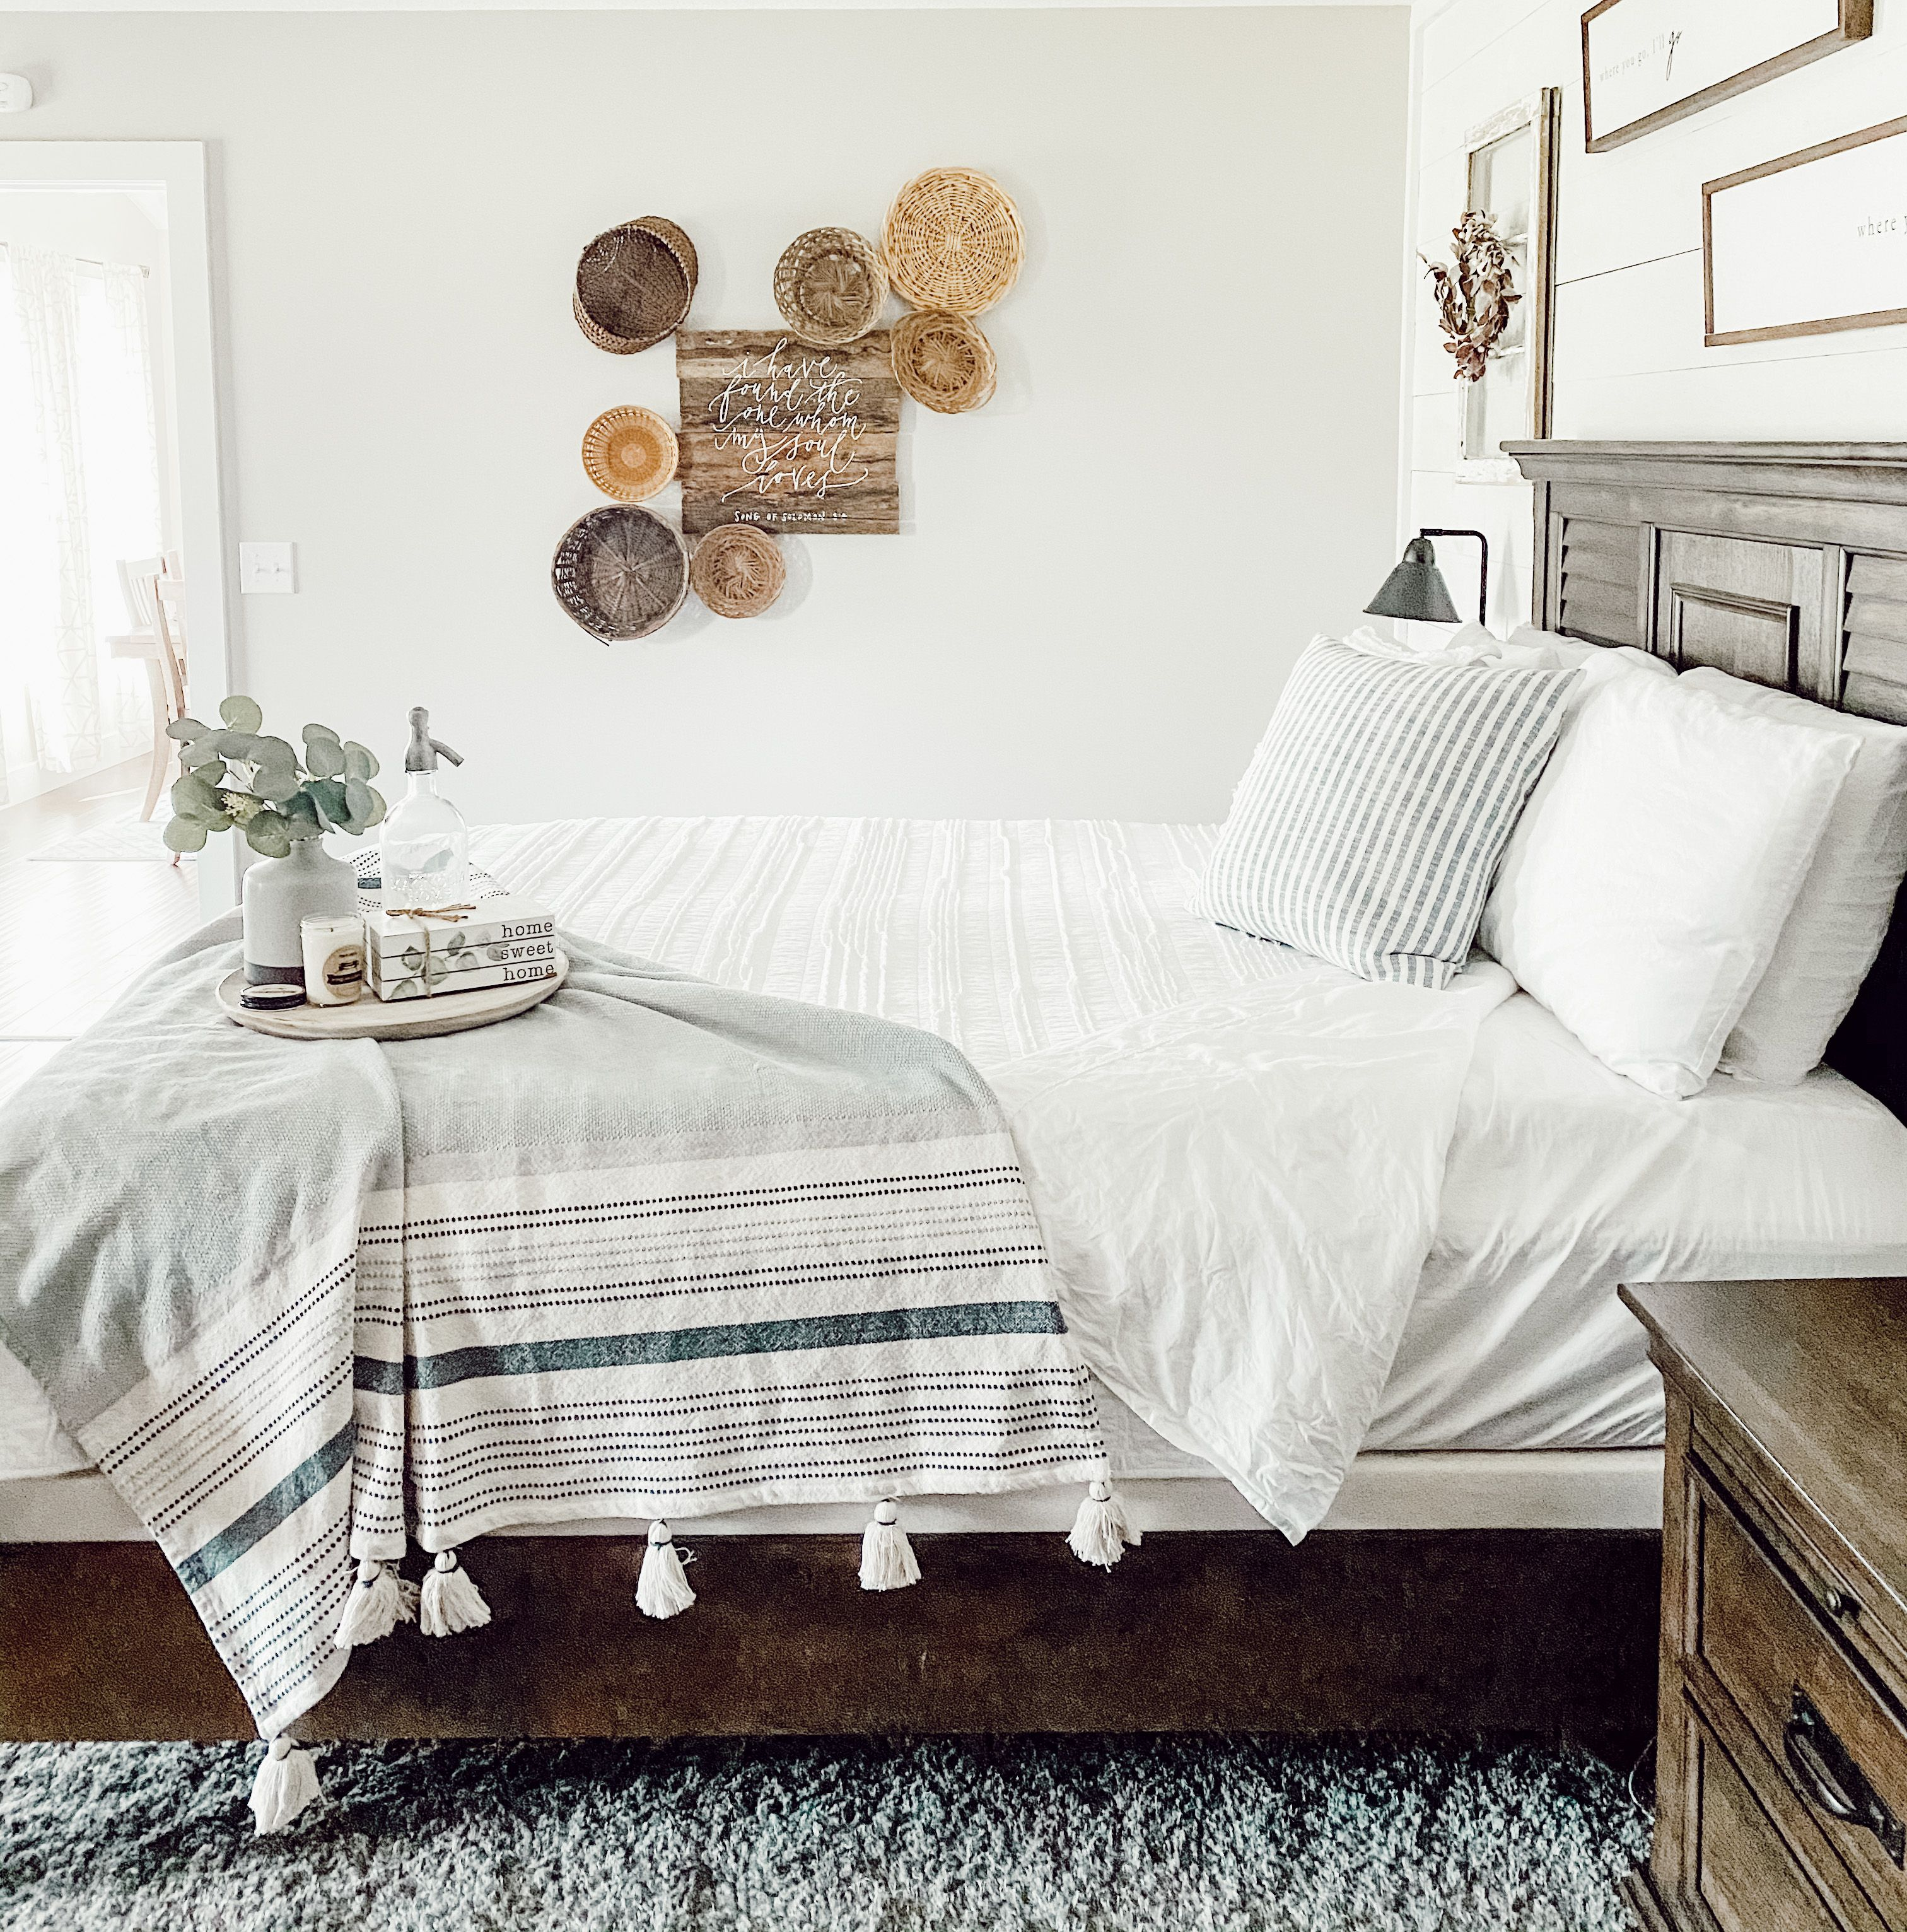 Learn how to create a basket wall for any space in your home. Perfect modern farmhouse decor! #howto #farmhousebedroom #farmhousebedding #modernfarmhouse #basketwall #neutraldecor